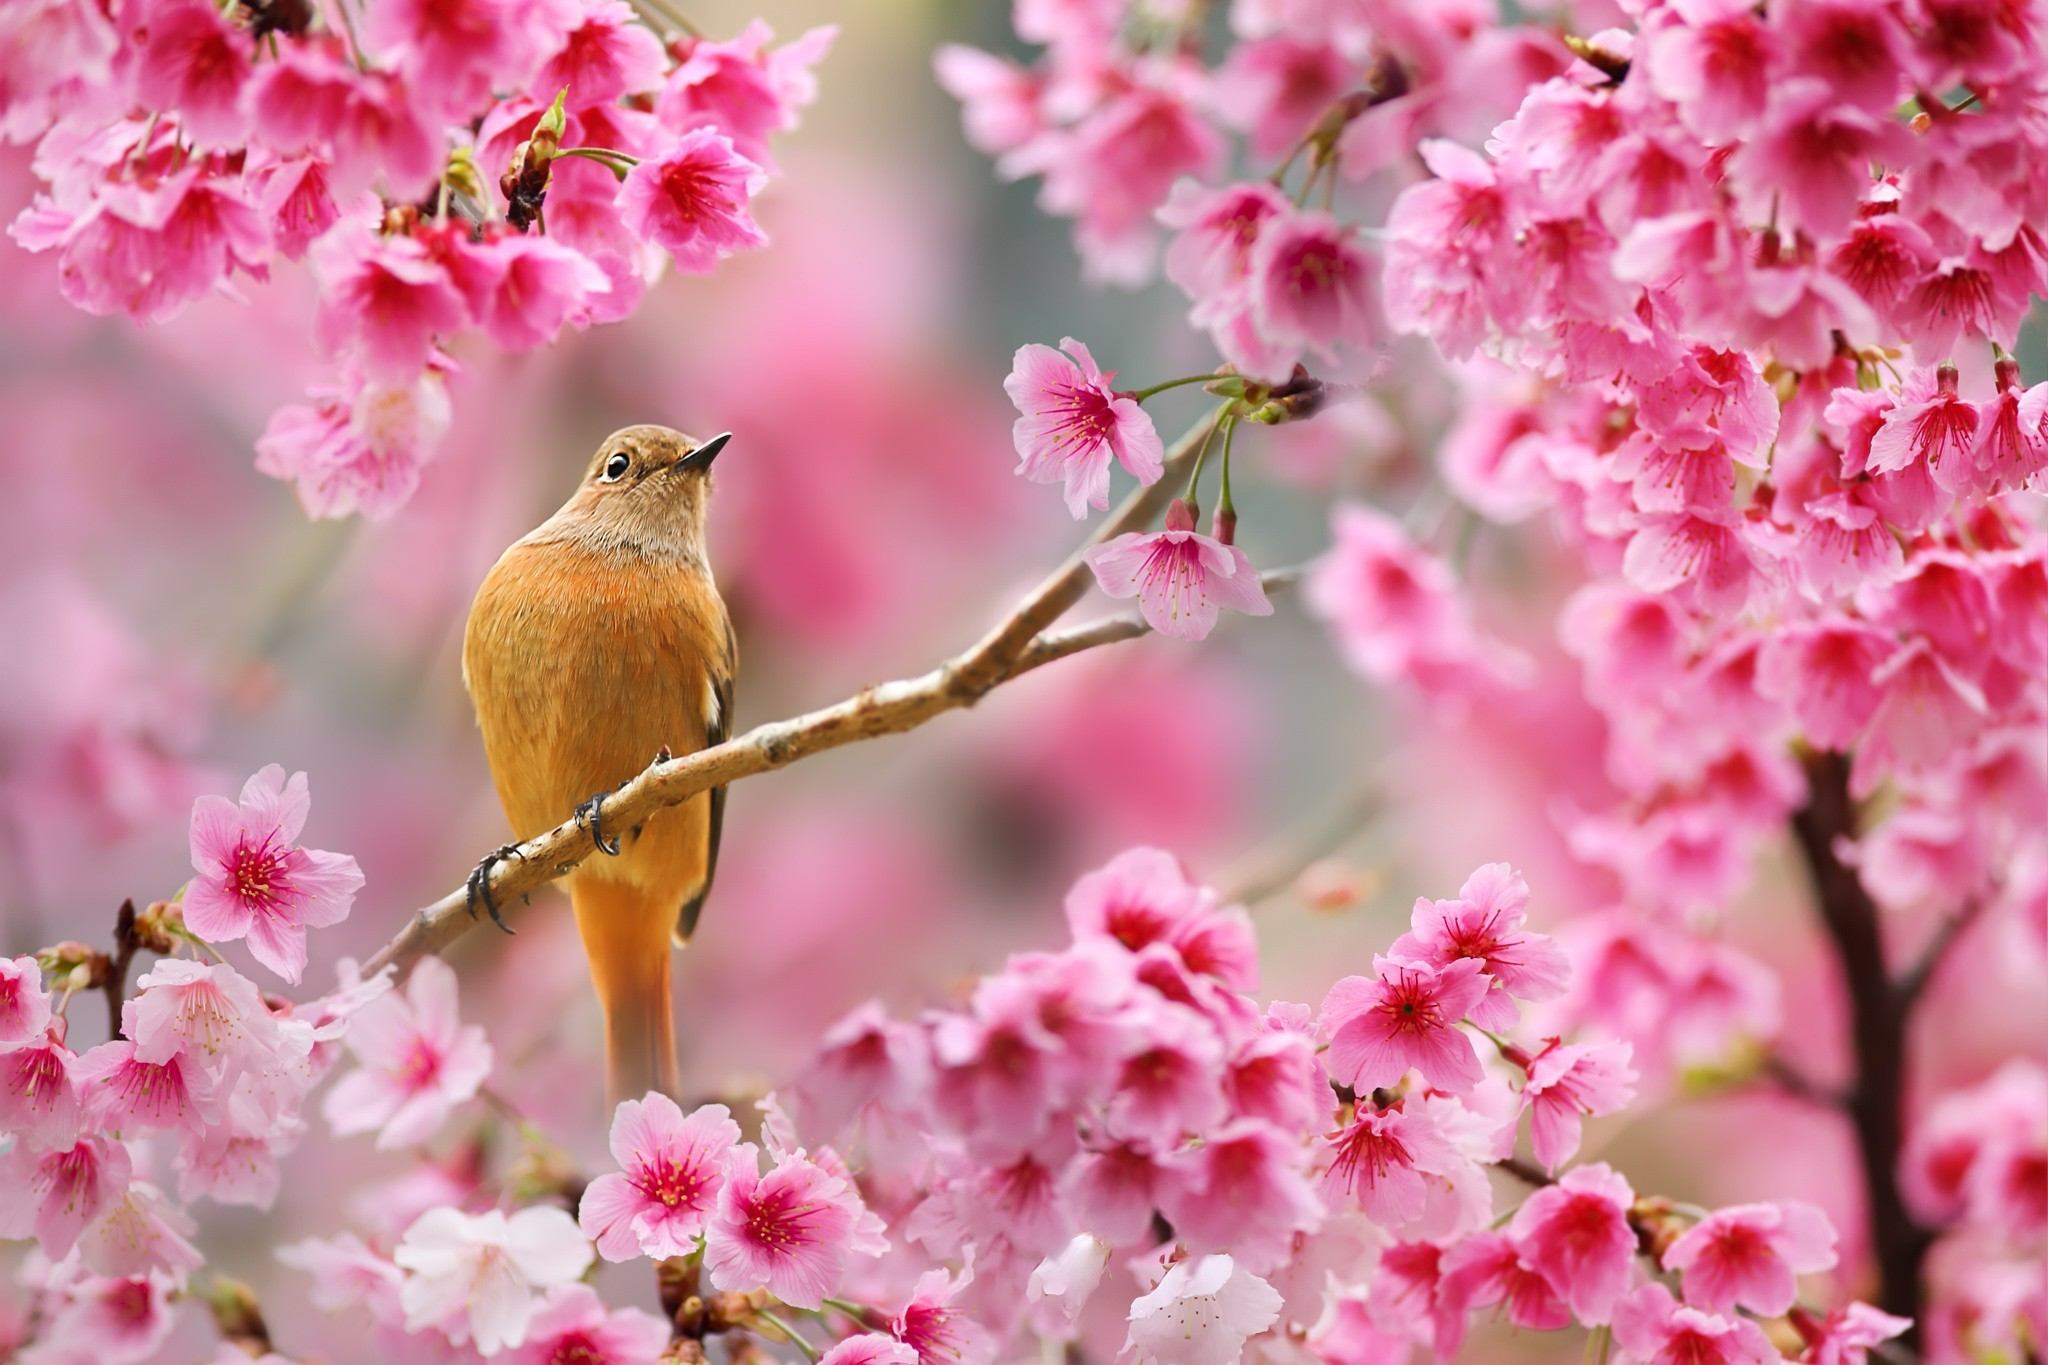 nature, Birds, Animals, Flowers, Plants, Depth Of Field, Cherry Blossom  Wallpapers HD / Desktop and Mobile Backgrounds